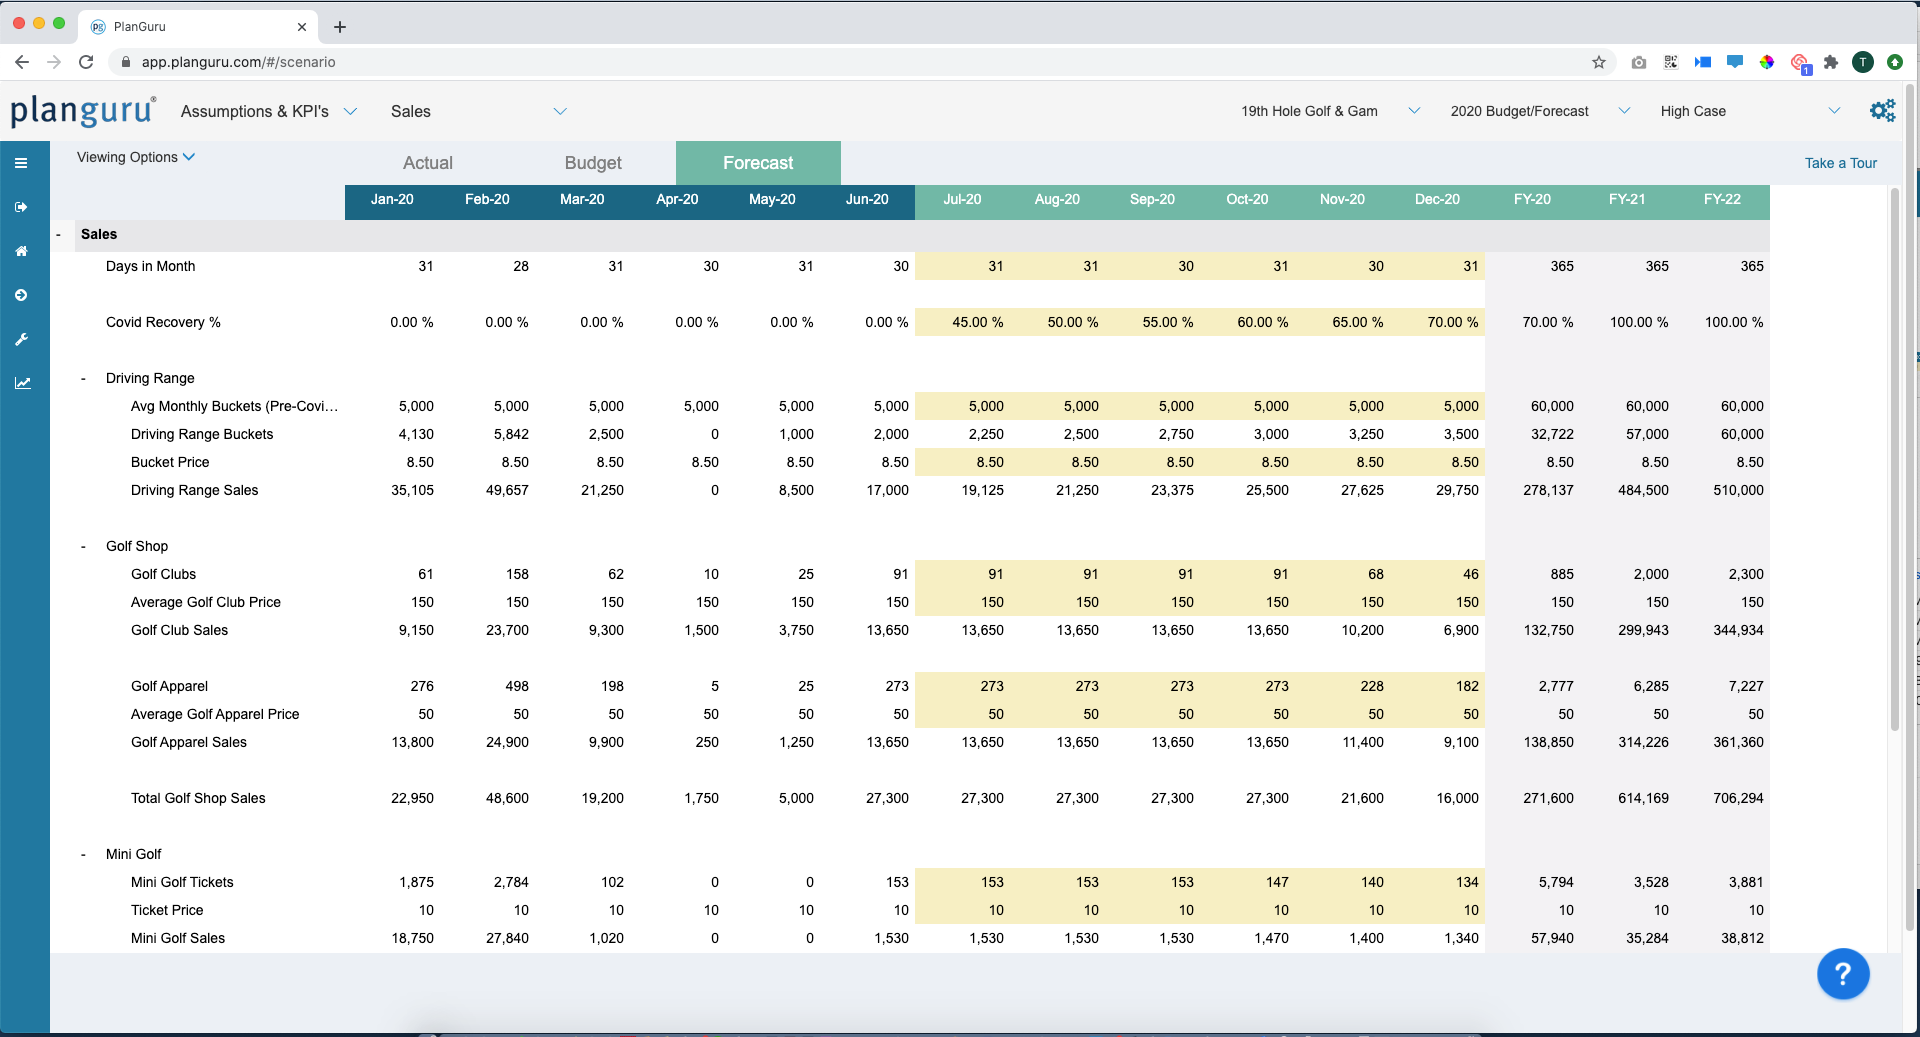 KPI's and Other Metrics